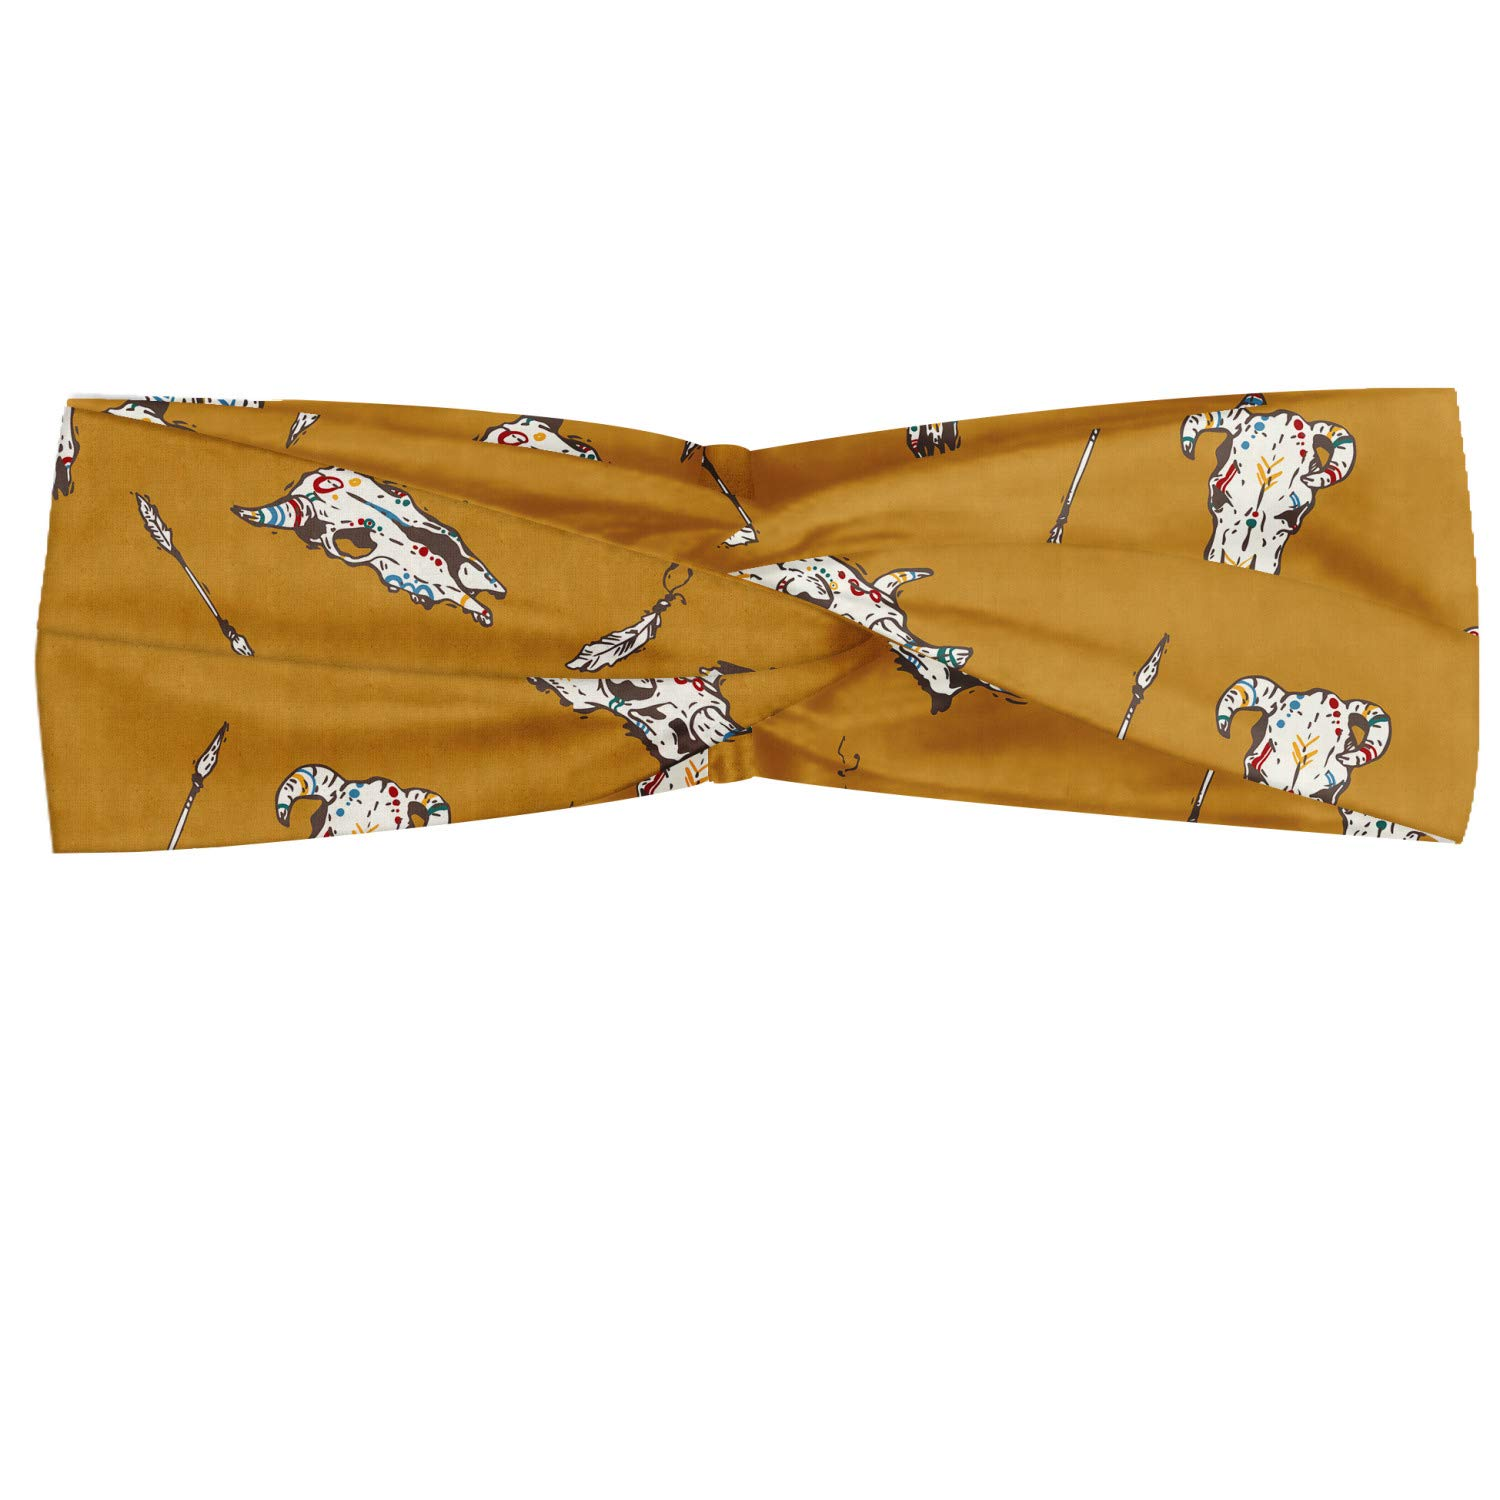 Ambesonne Rodeo Headband, Bohemian Print of Cow Skulls with Retro Element and Feathers Wild West, Elastic and Soft Women's Bandana for Sports and Everyday Use, Pale Coffee and White